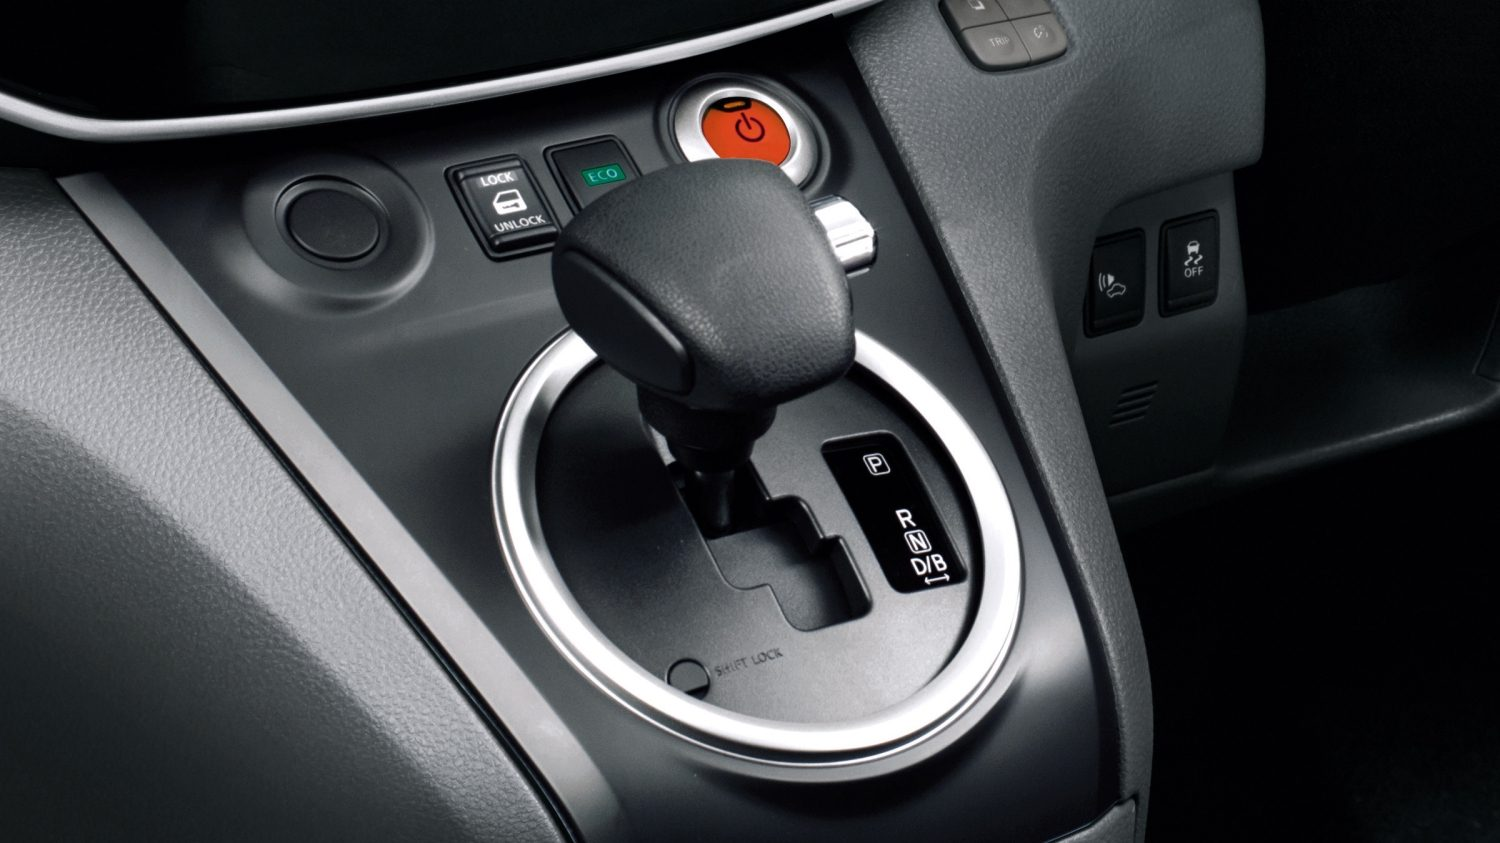 New Nissan e-NV200 COMBI design shift knob